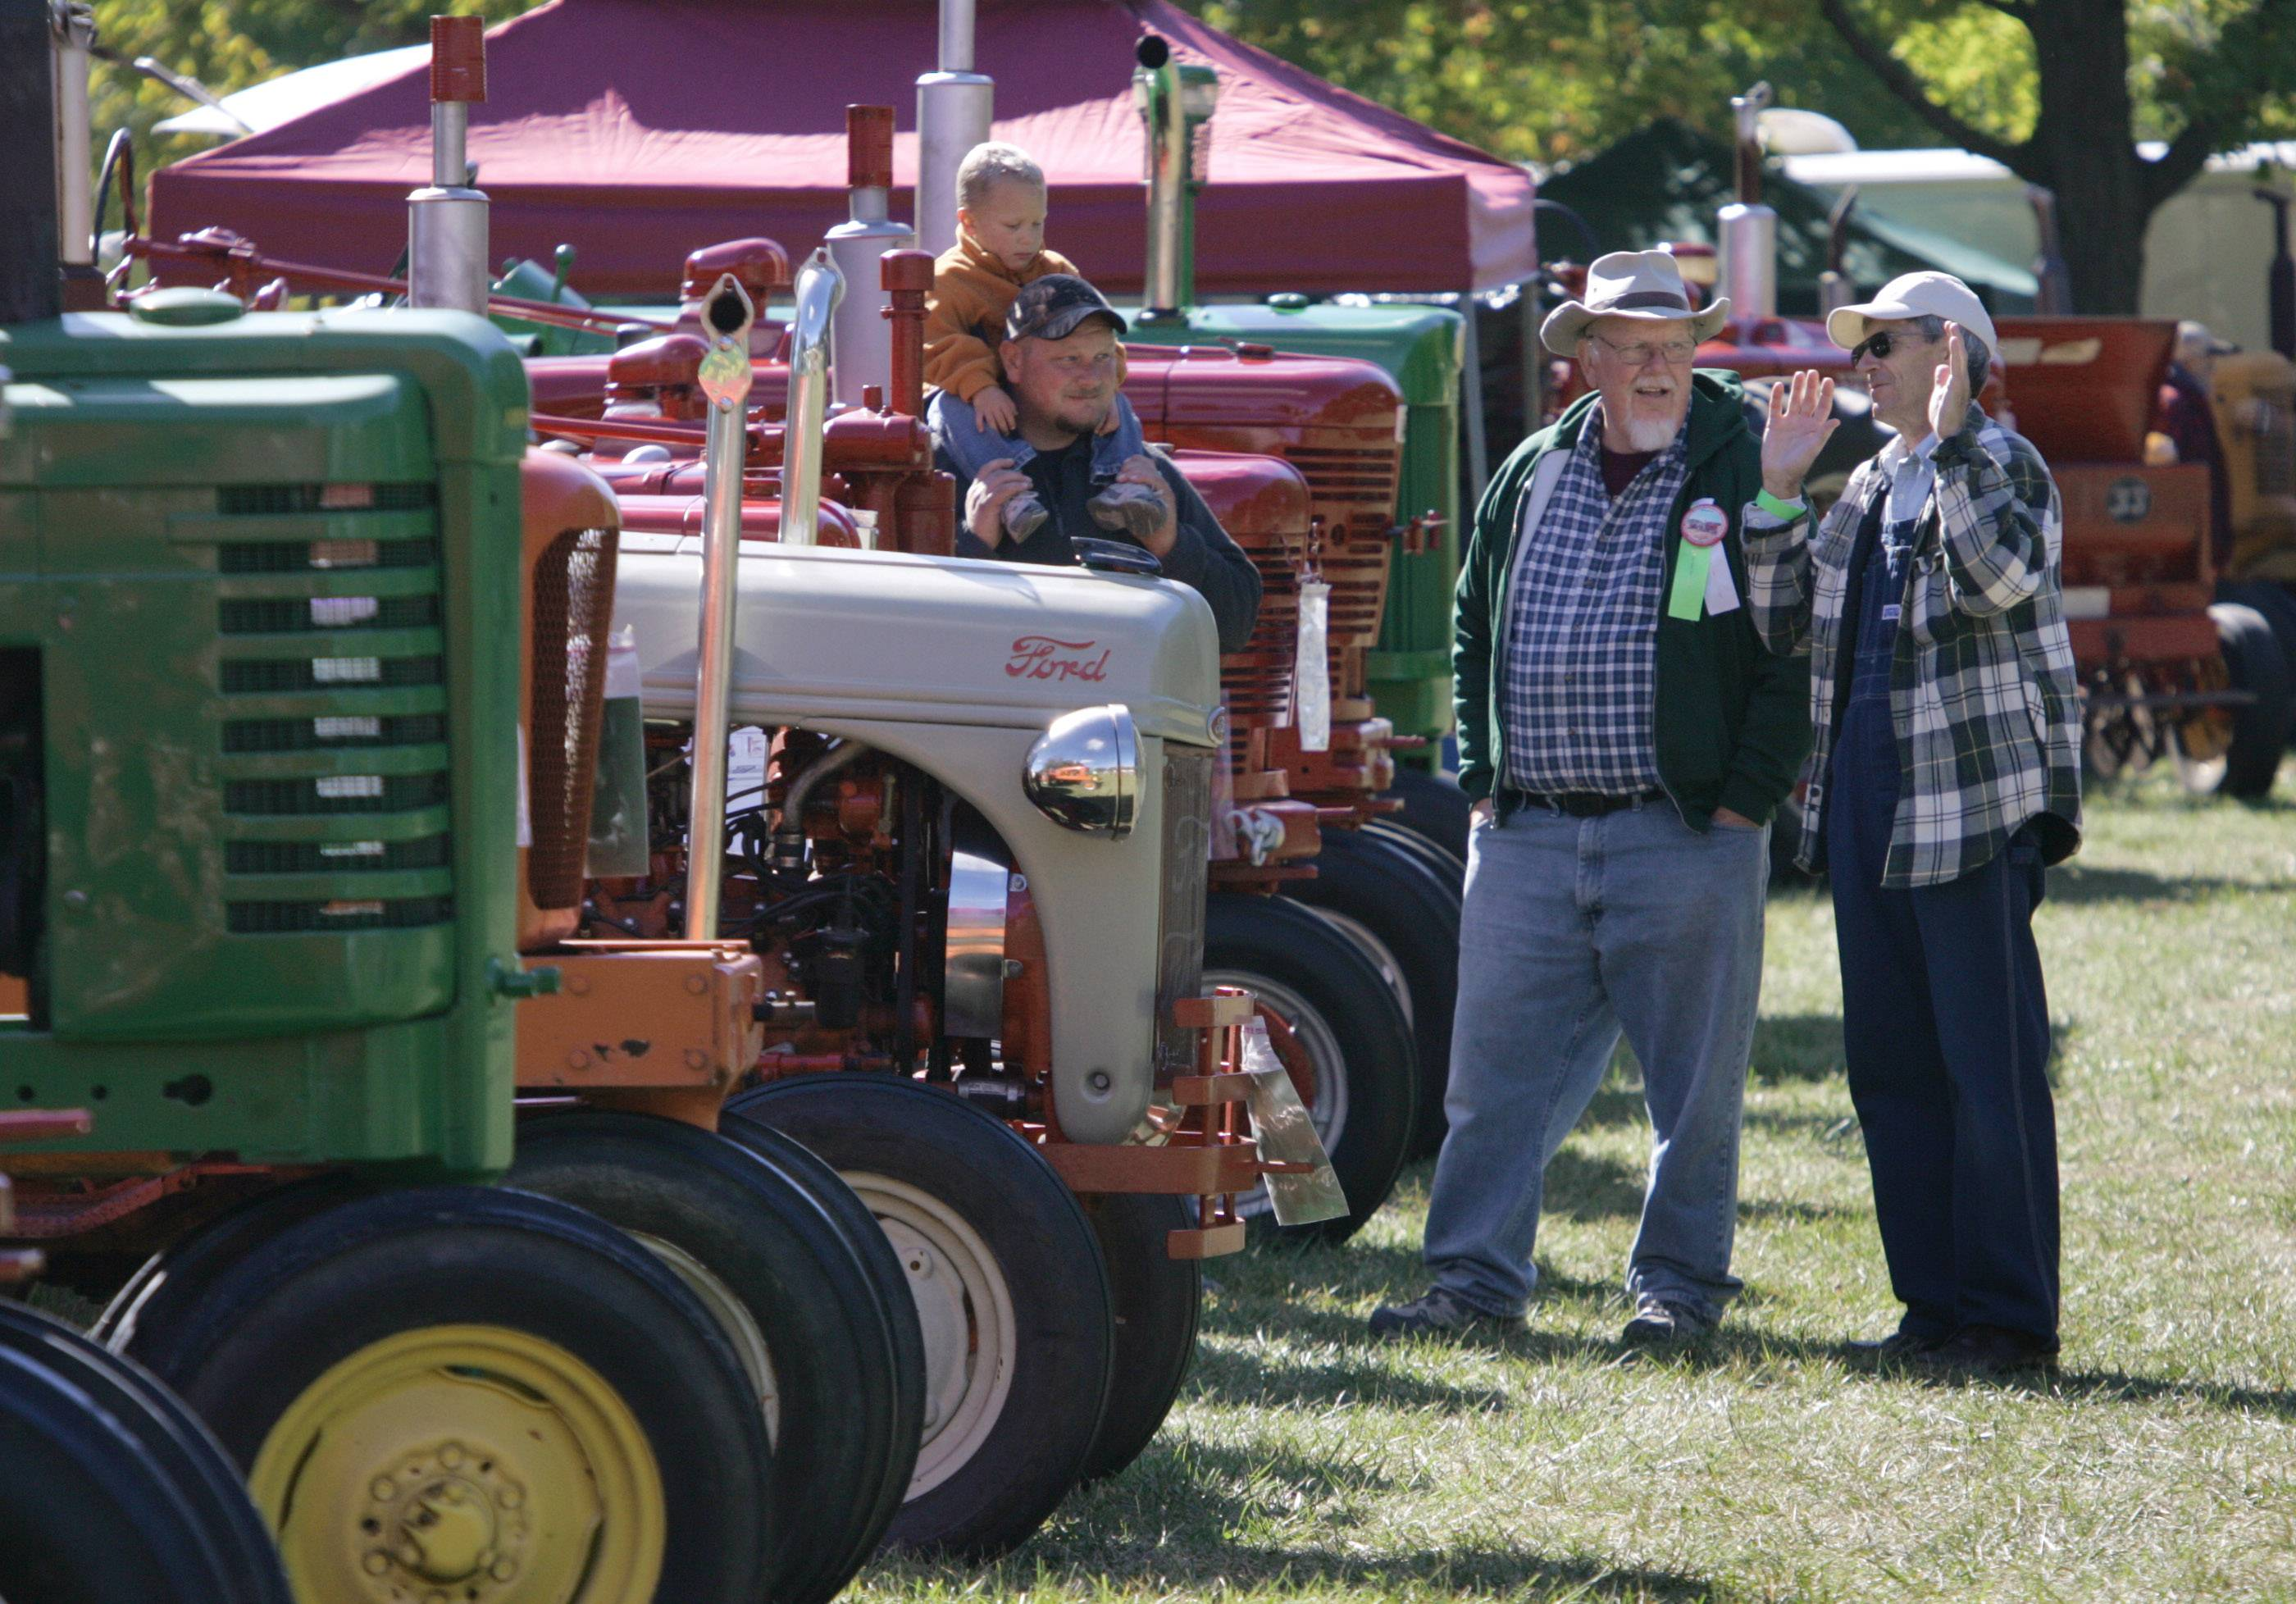 Attendees discuss the tractors on display at a previous Lake County Farm Heritage Festival. Formerly held at Lakewood Forest Preserve, the event moves to the Lake County Fairgrounds in Grayslake this year, from 10 a.m. to 7 p.m. Sept. 23 and 10 a.m. to 5 p.m. Sept. 24.